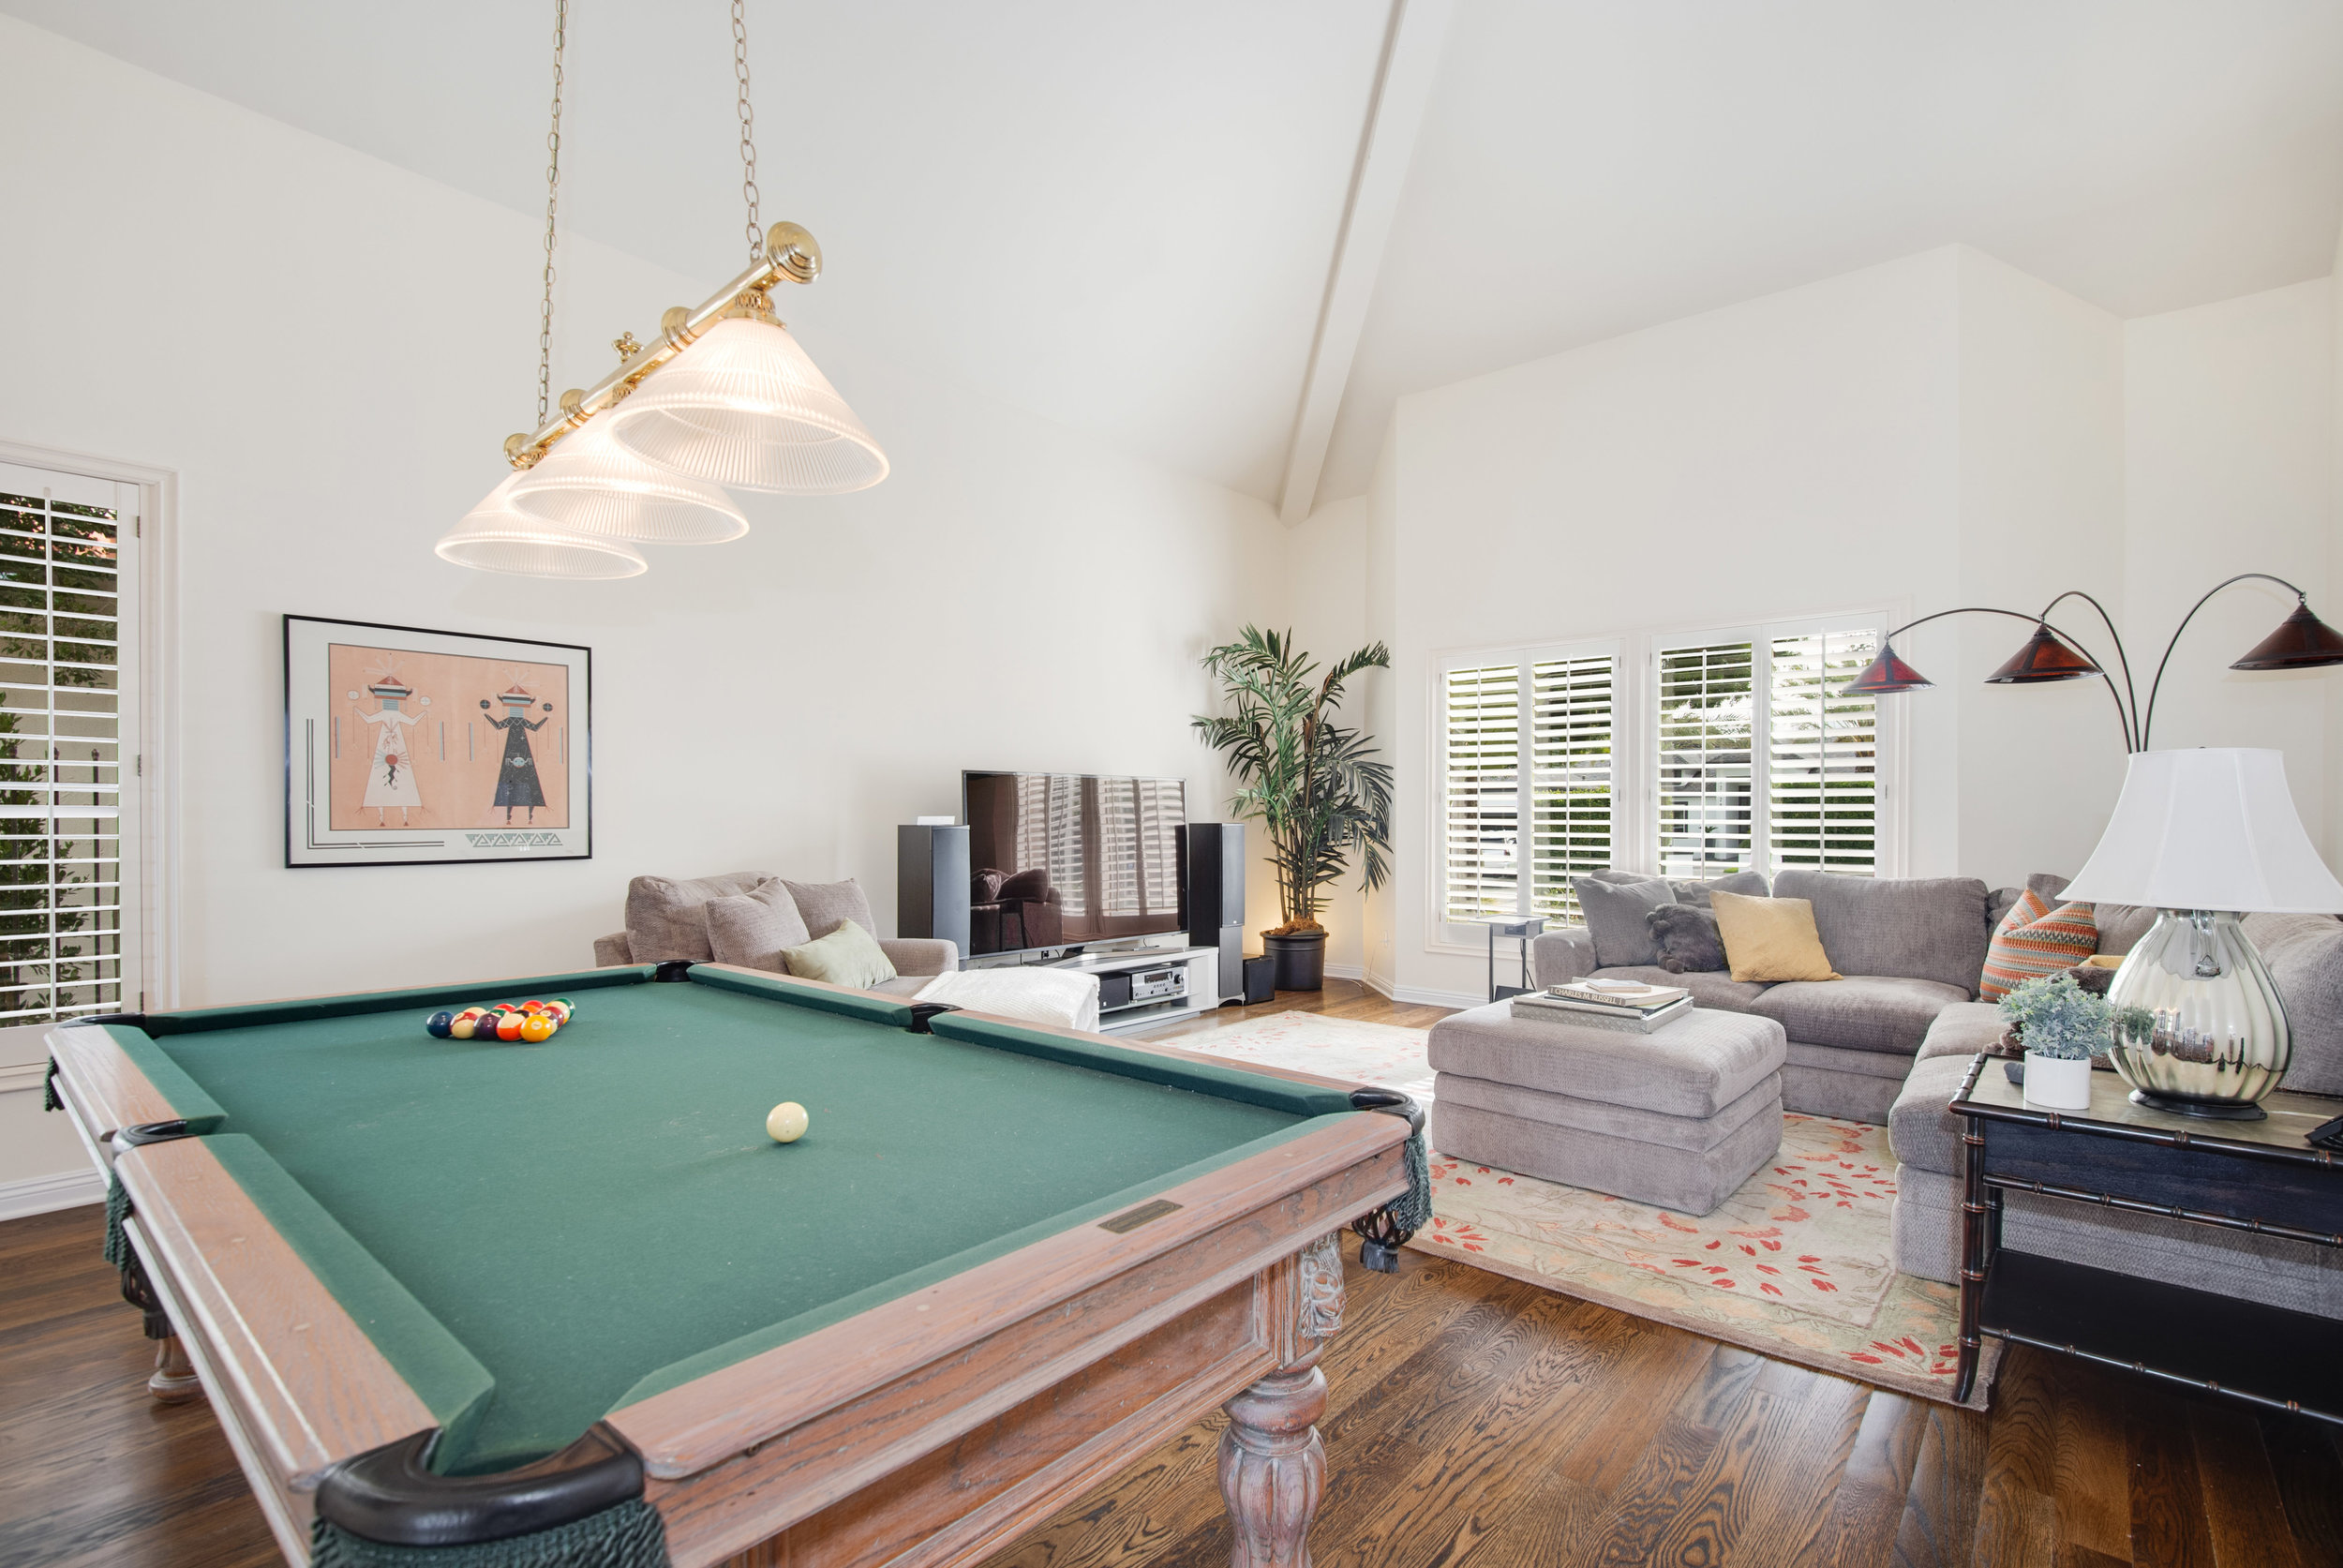 010 Pool Table 12027 Talus Place Beverly Hills 90210 For Sale Lease The Malibu Life Team Luxury Real Estate.jpg